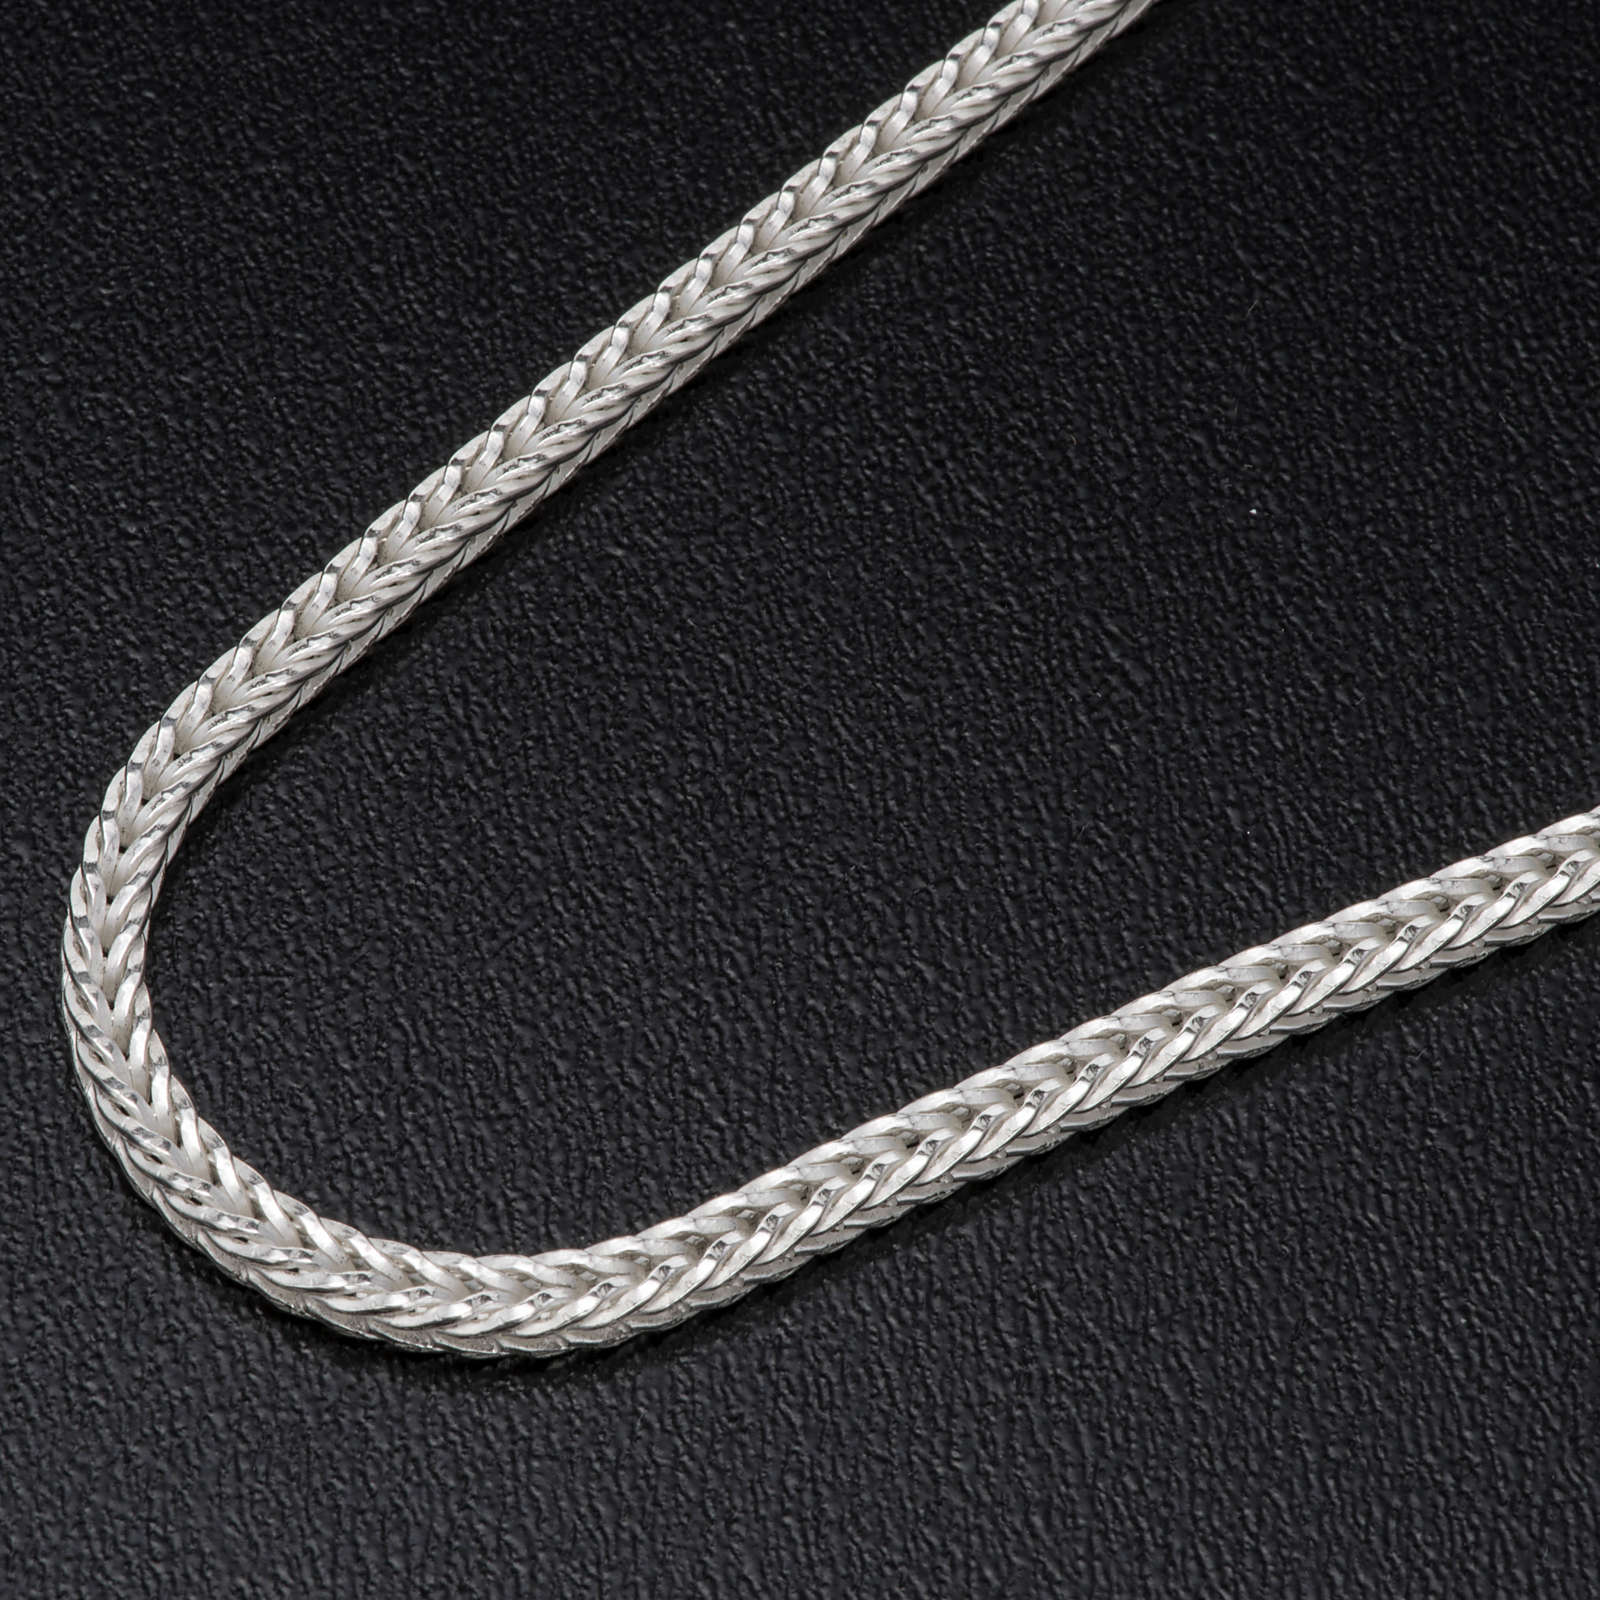 Silver wheat chain for pectoral cross, 90 cm long 3